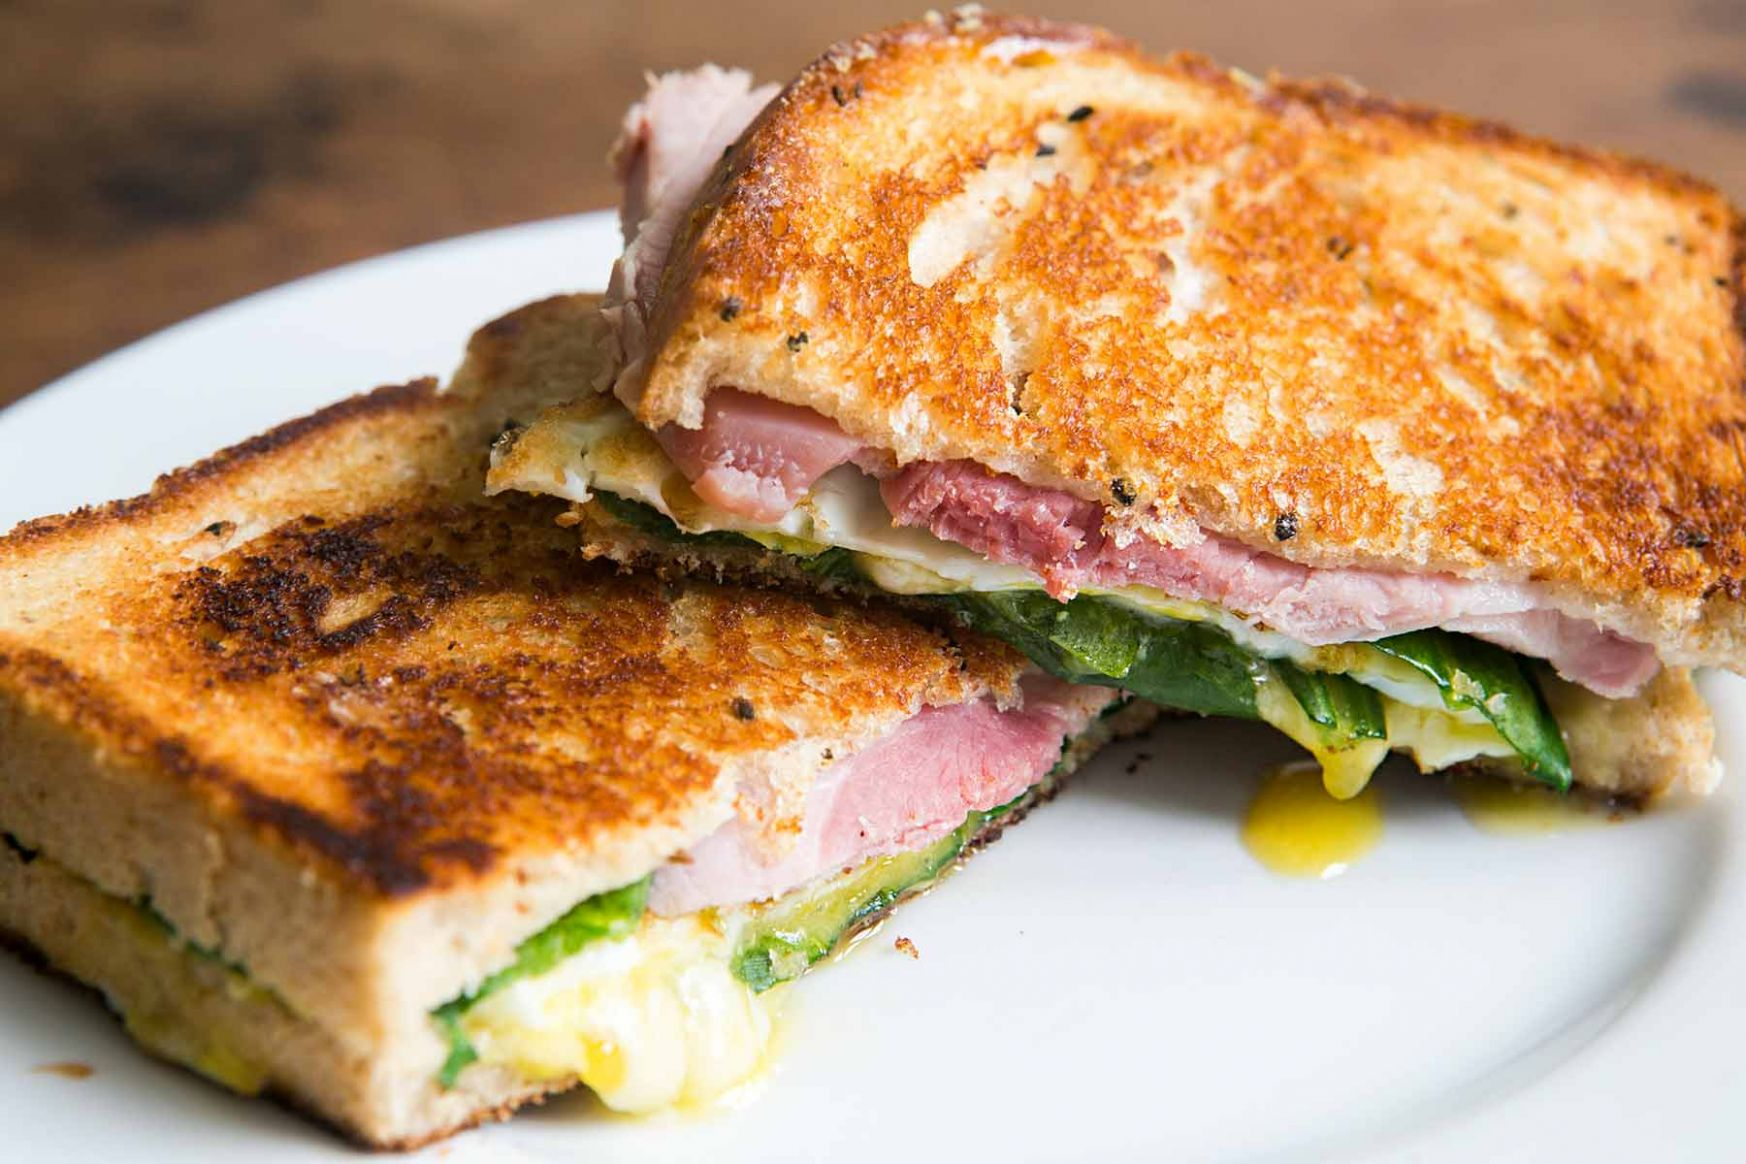 Greens, Eggs, and Ham, Grilled Cheese Sandwich - Sandwich Recipes With Ingredients And Procedure